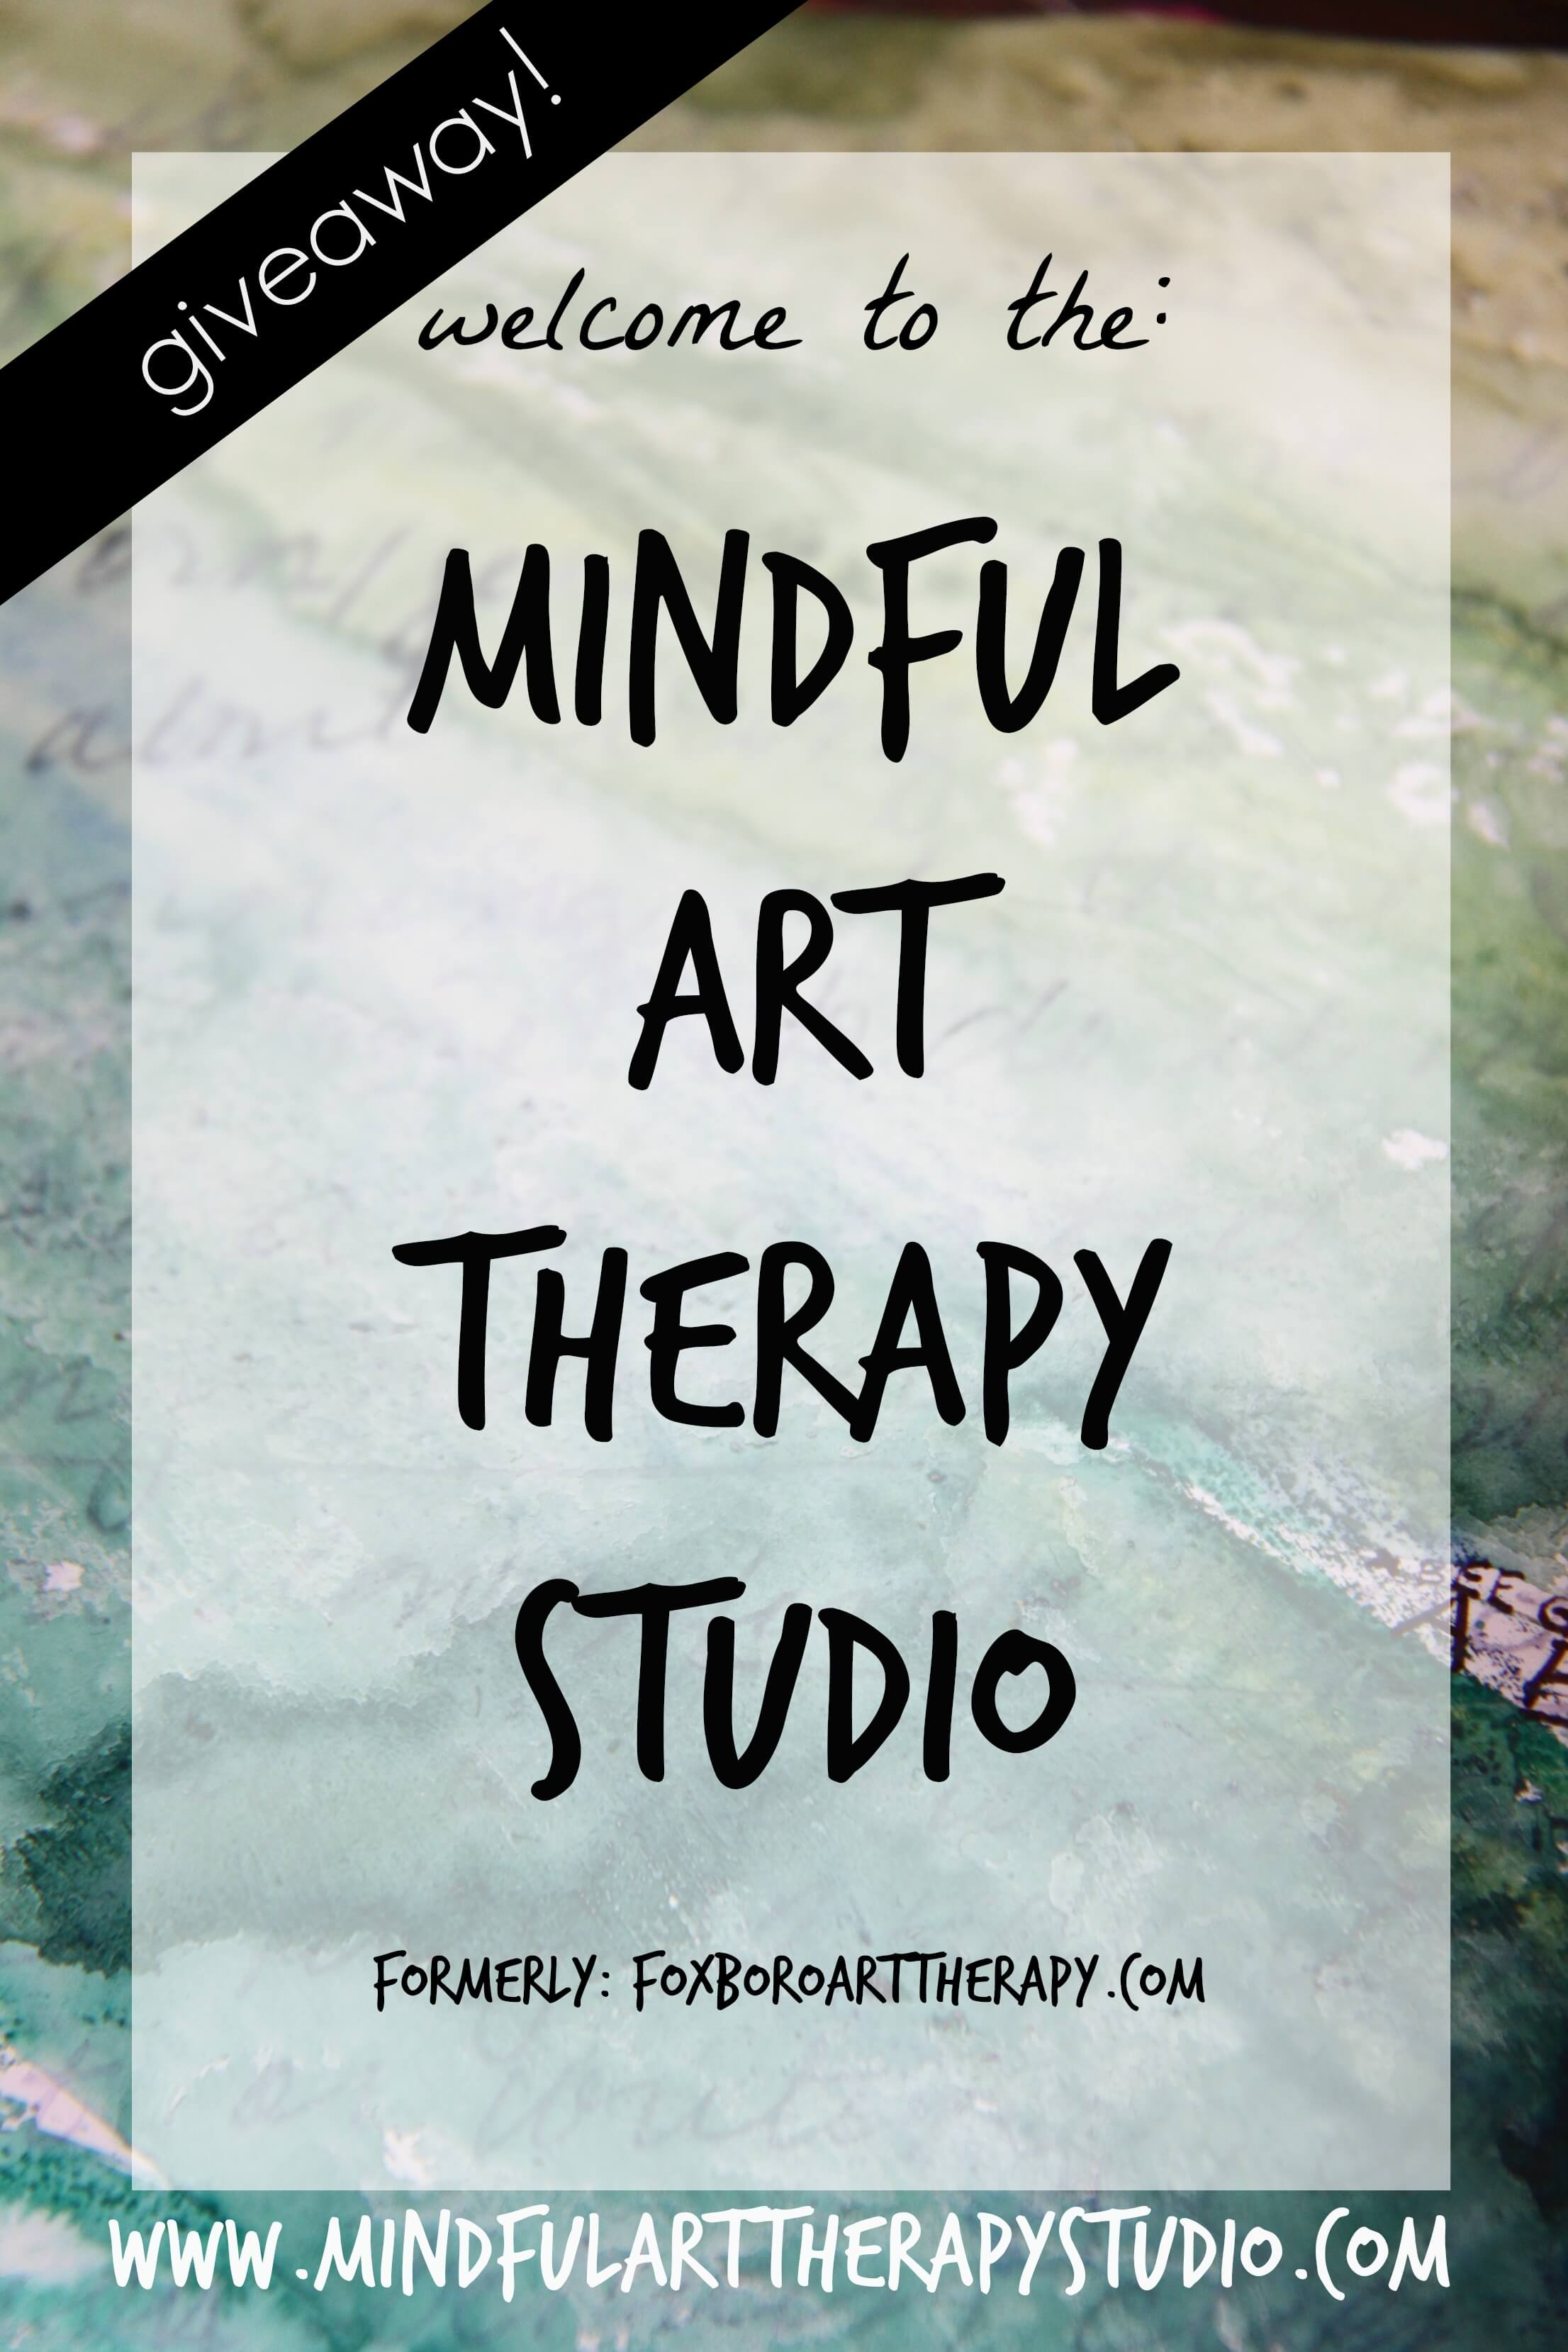 The Mindful Art Therapy Studio